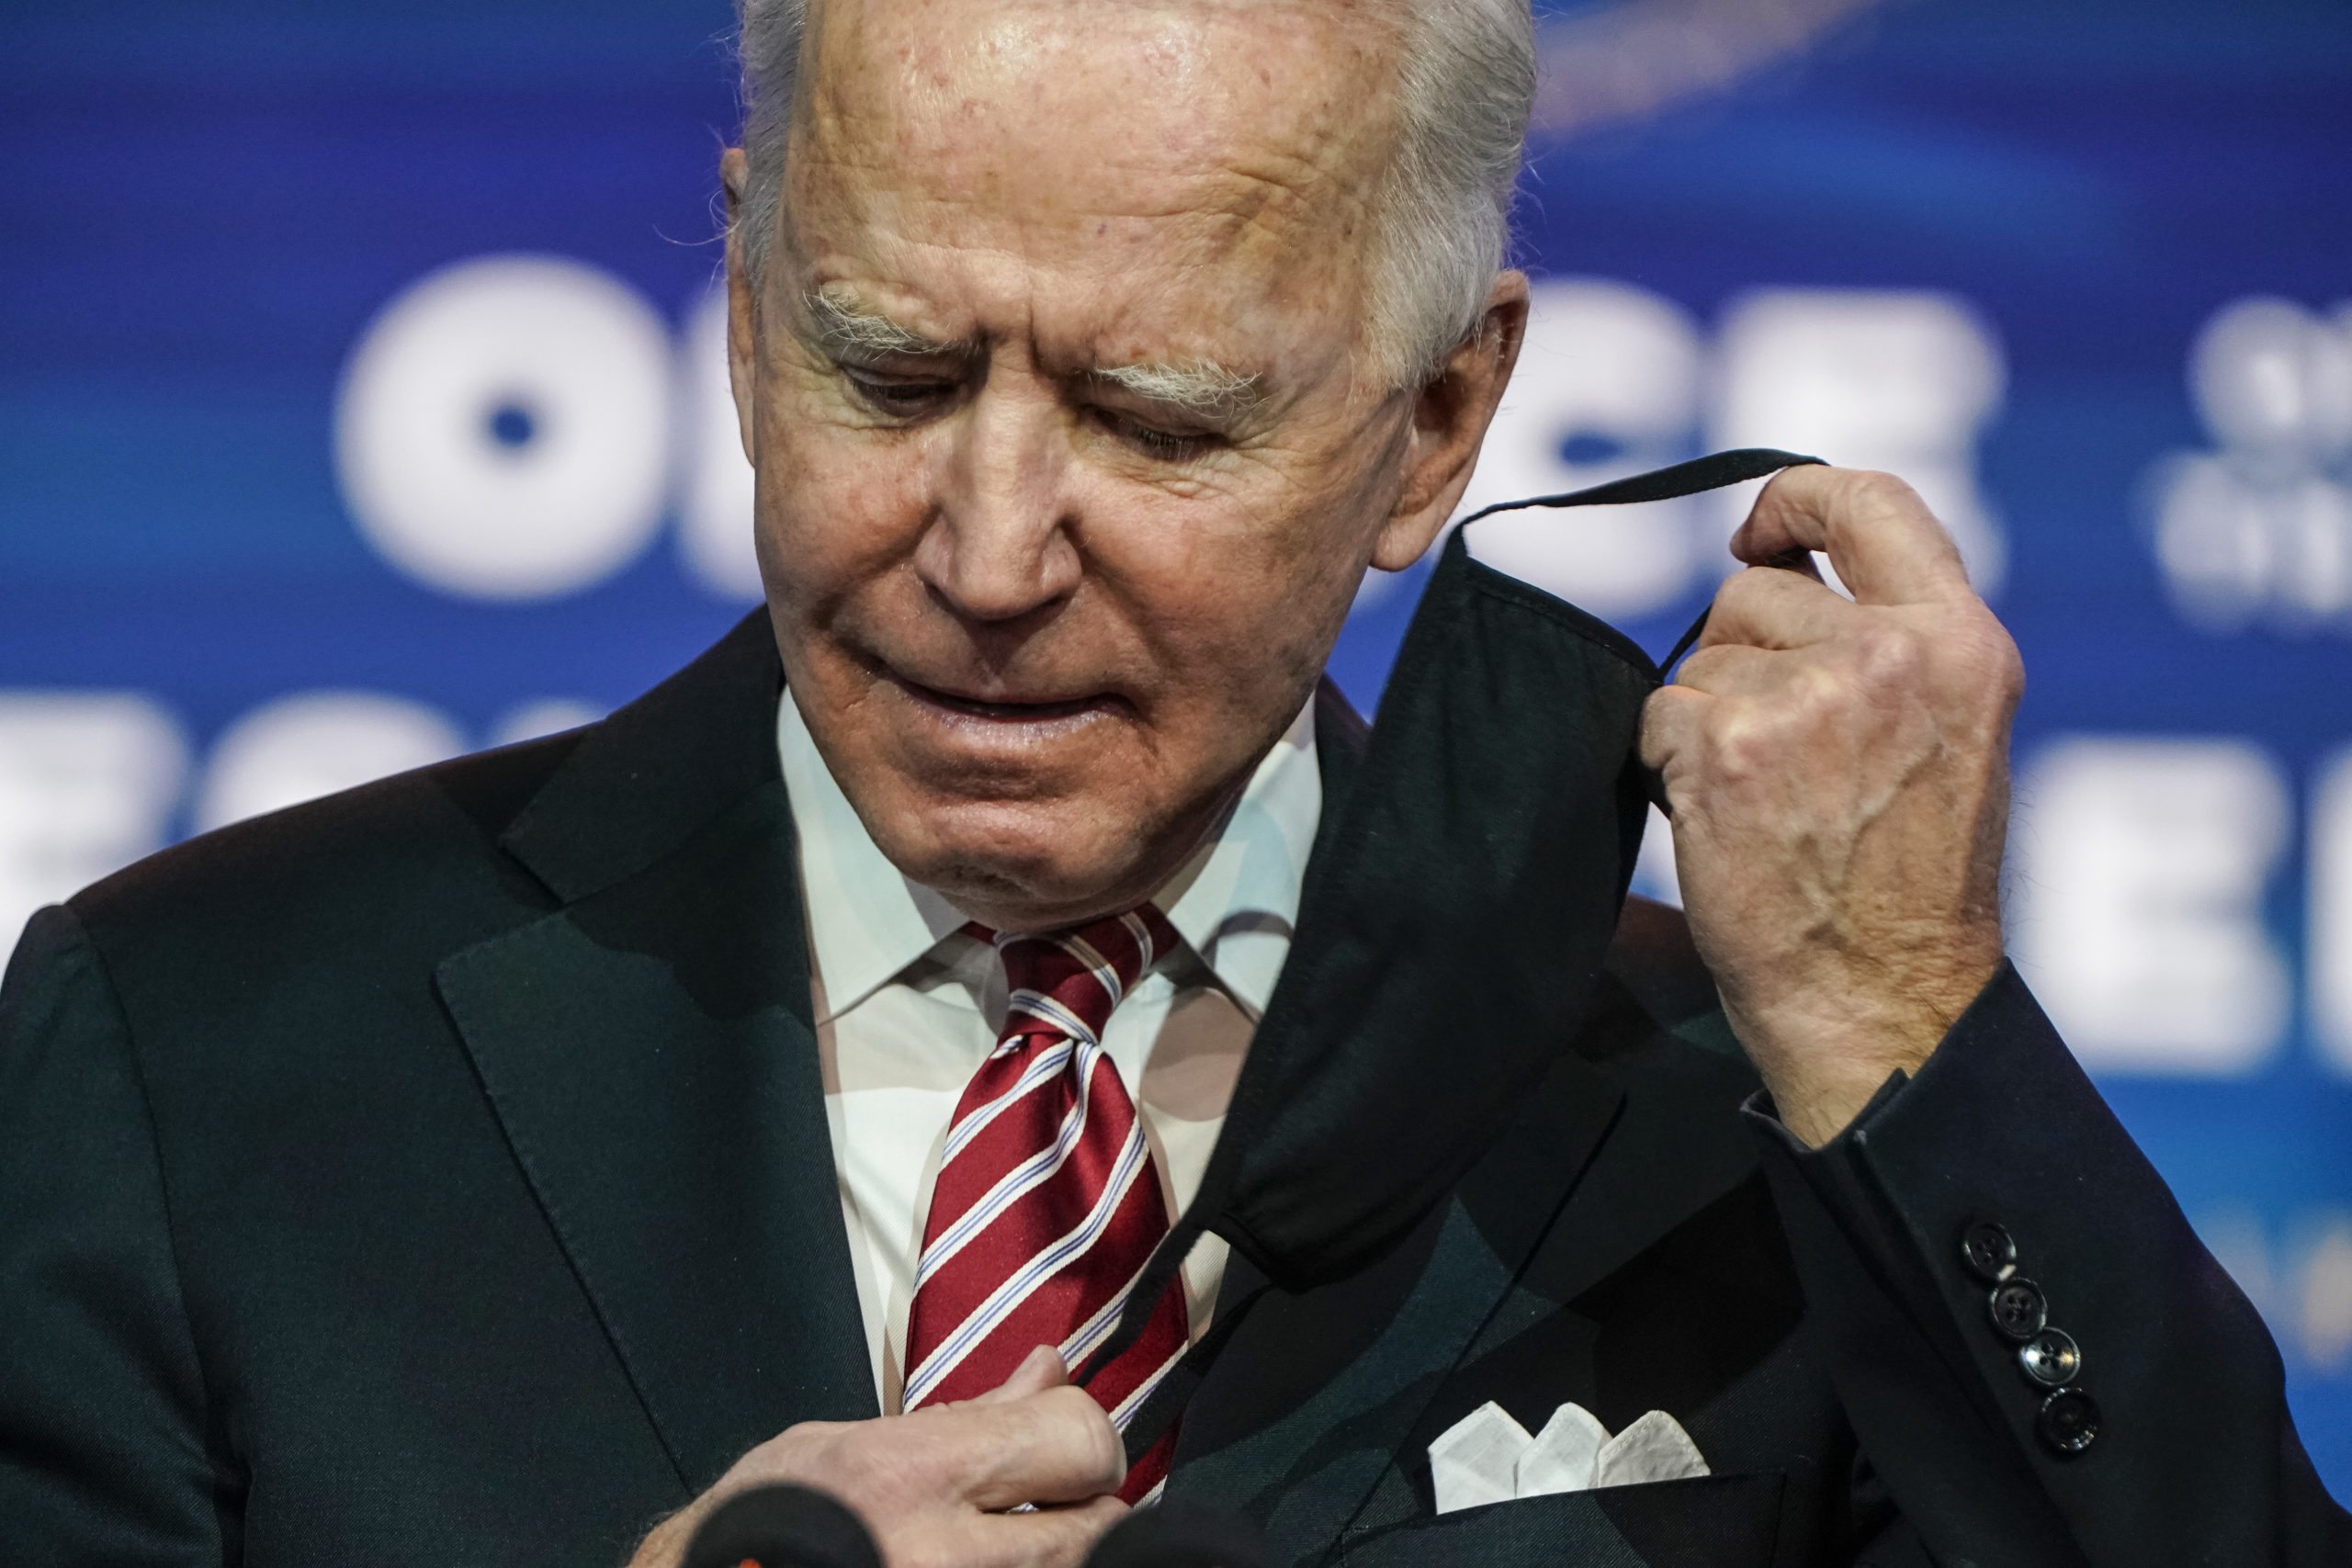 WILMINGTON, DE - DECEMBER 23: President-elect Joe Biden removes his mask before announcing Miguel Cardona as his nominee for Education Secretary at the Queen theatre on December 23, 2020 in Wilmington, Delaware. Cardona, the Connecticut Education Commissioner, will face the urgent task of planning to reopen schools safely during the COVID-19 pandemic. (Photo by Joshua Roberts/Getty Images)